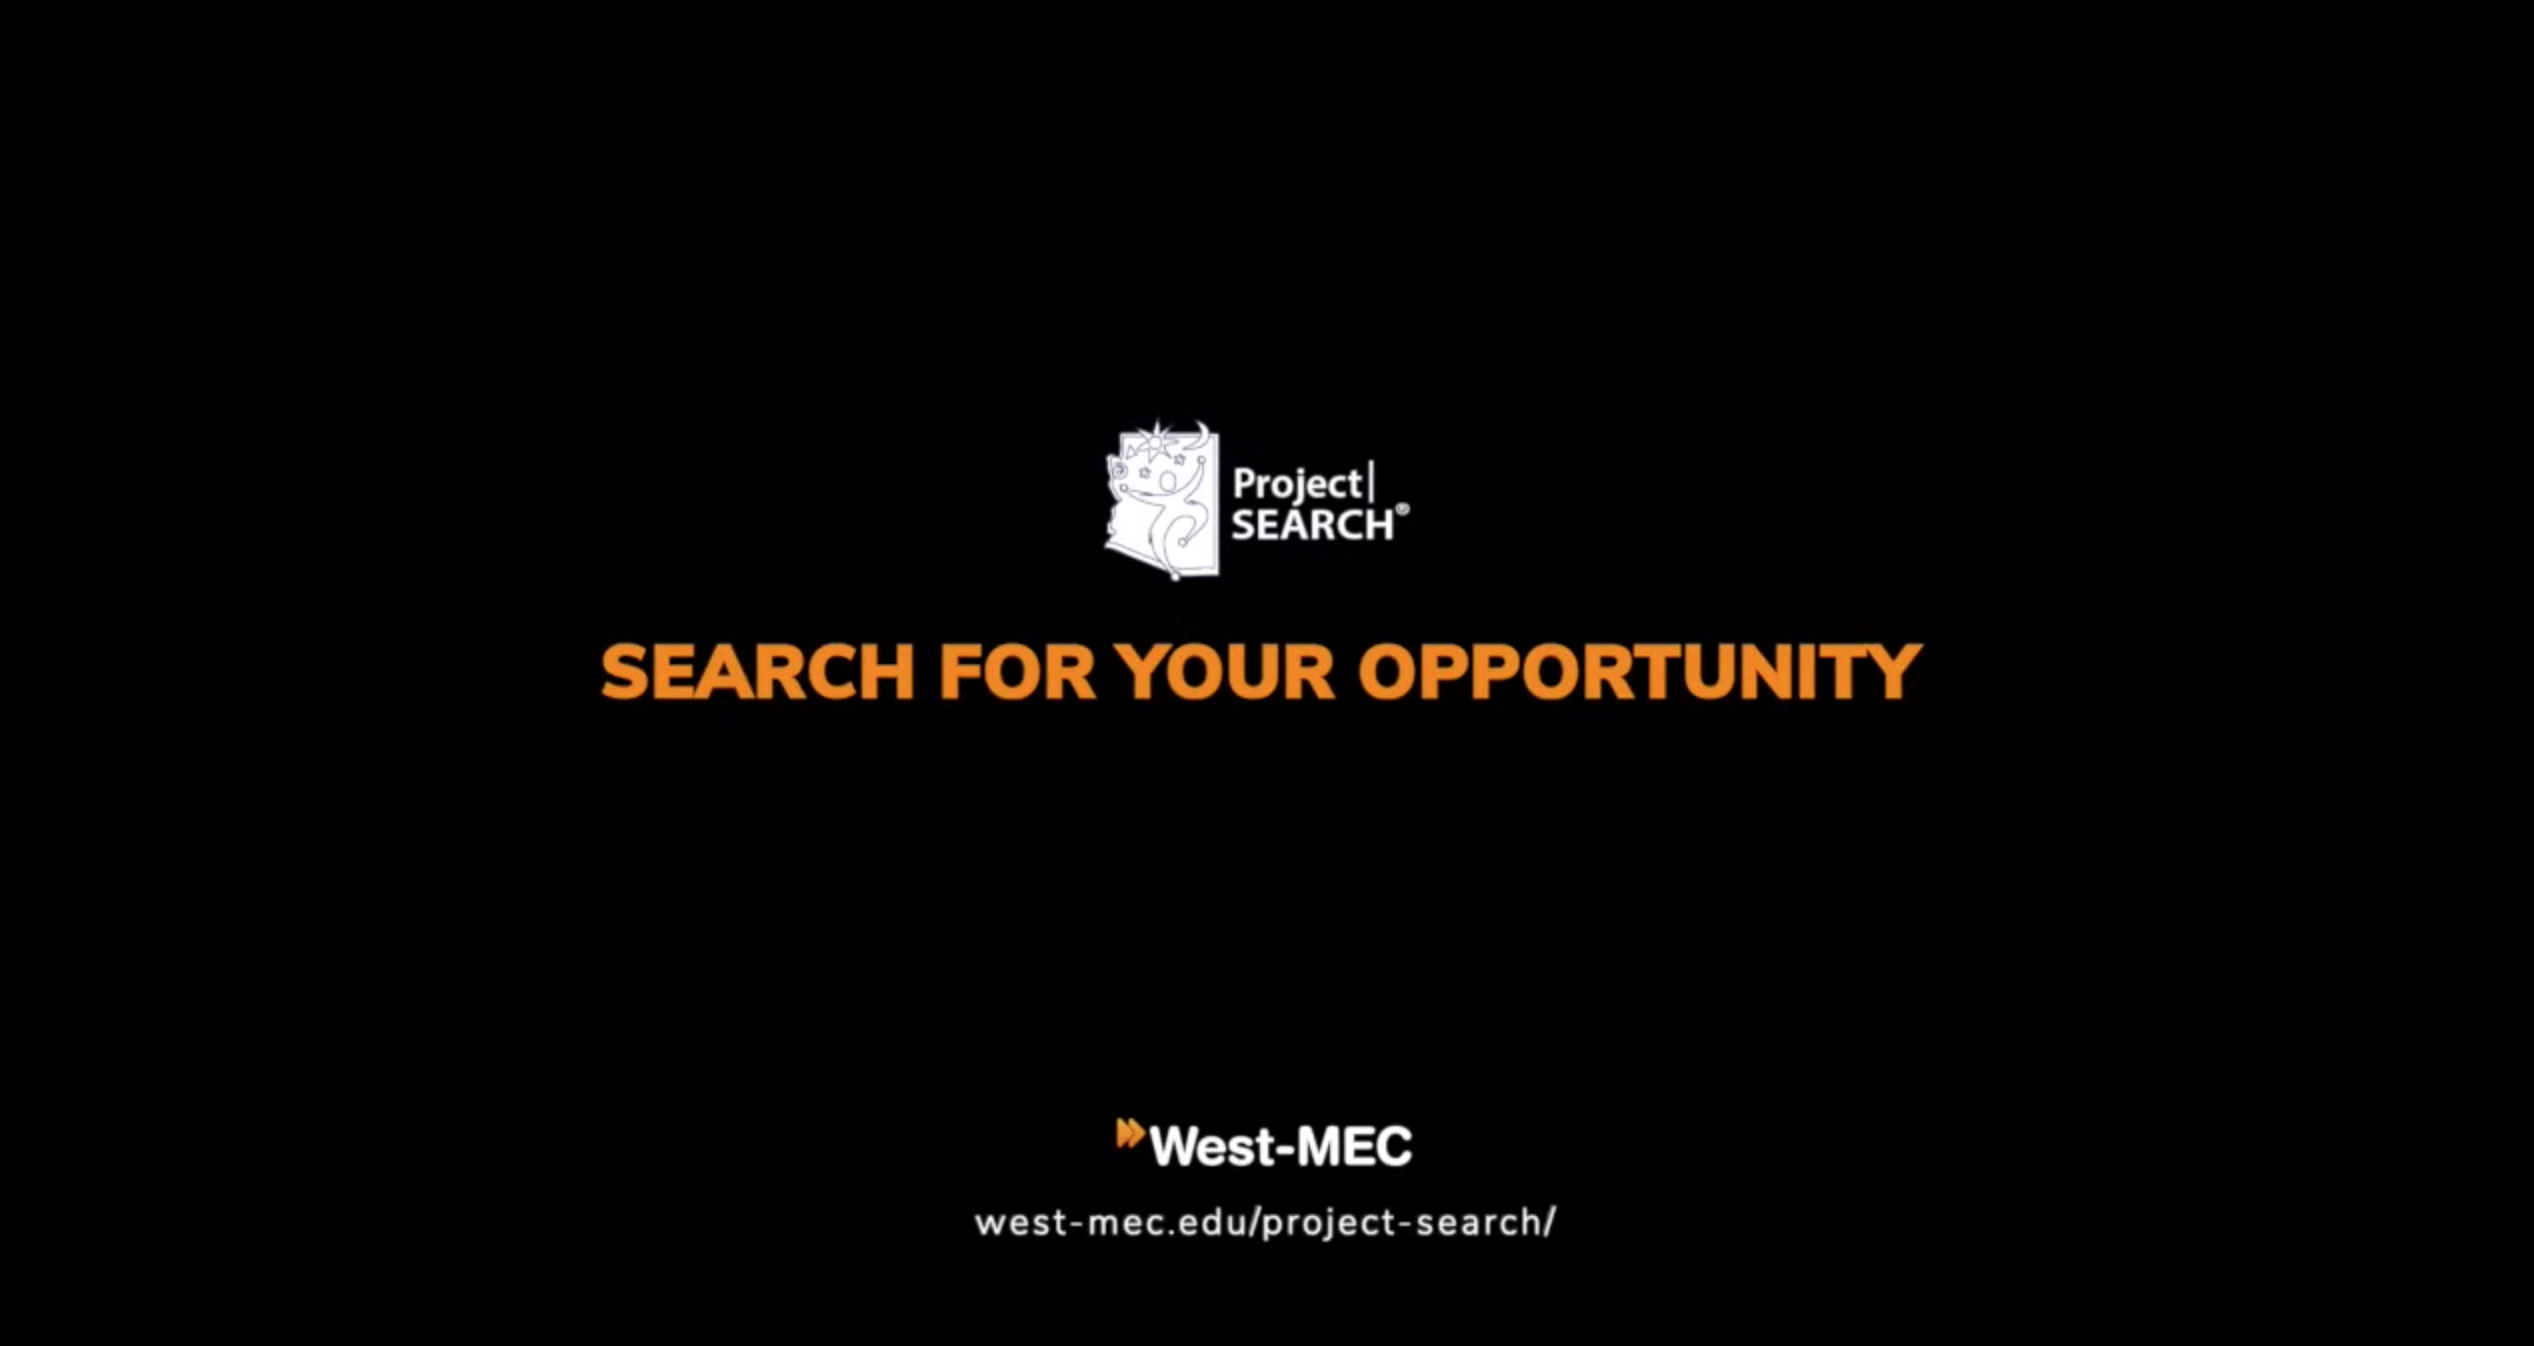 TITLE IMAGE: PROJECT SEARCH